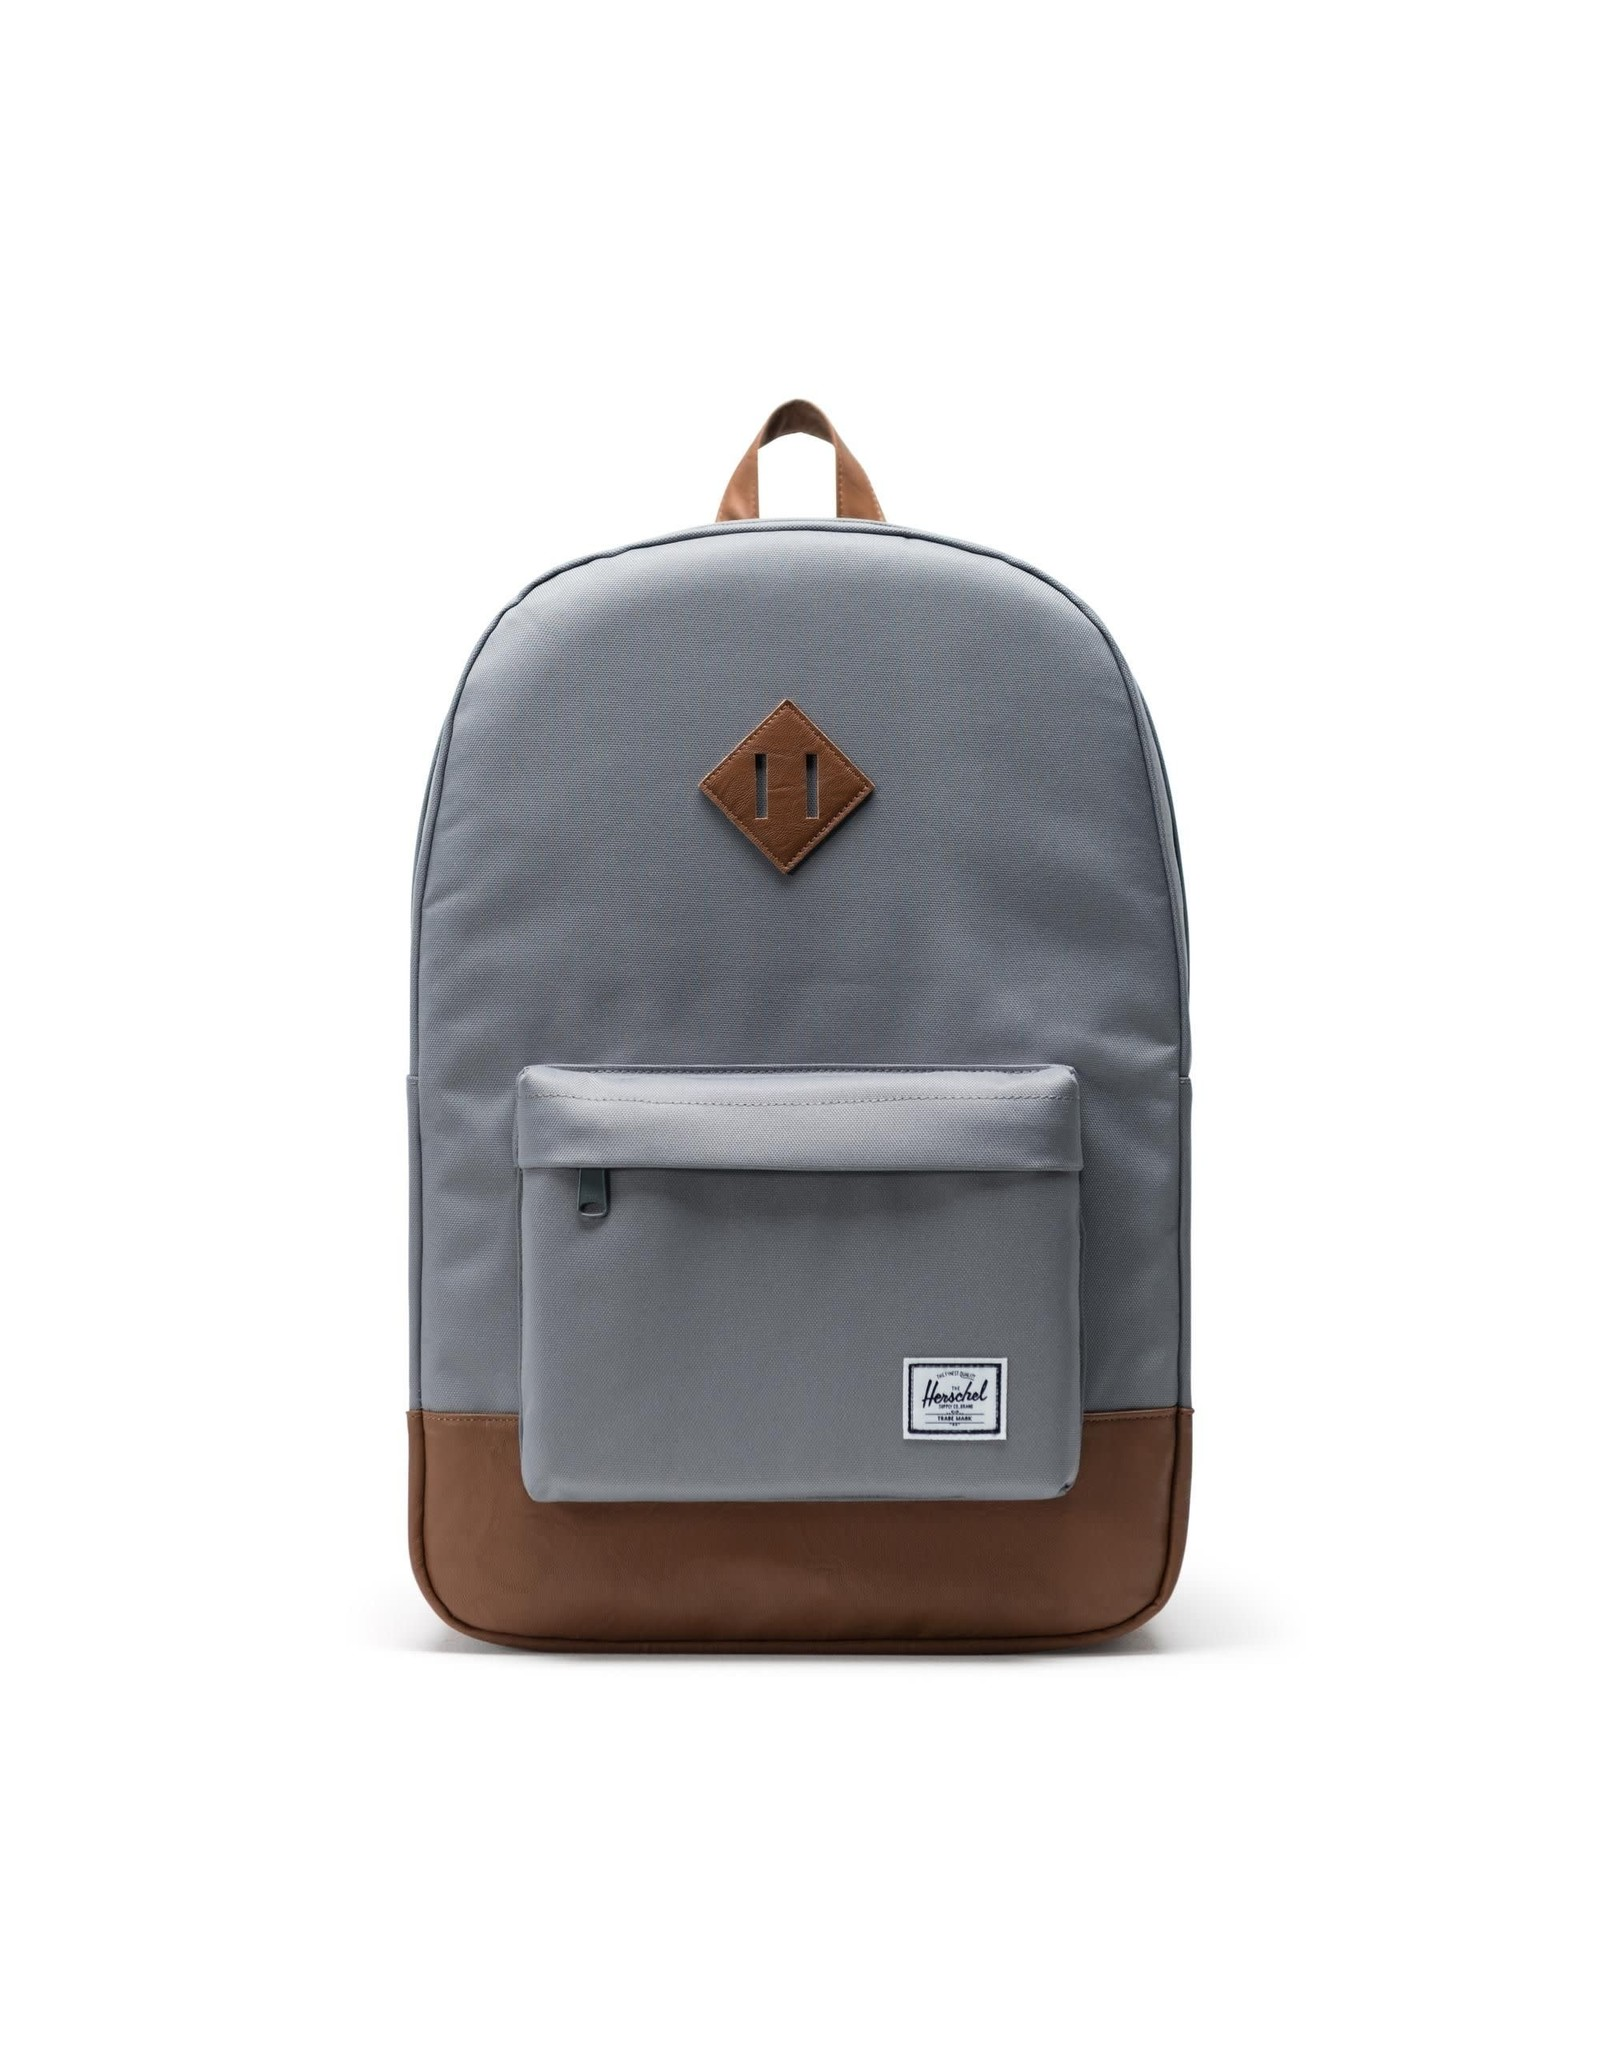 herschel Herschel - Sac à dos heritage grey/tan synthetic leather